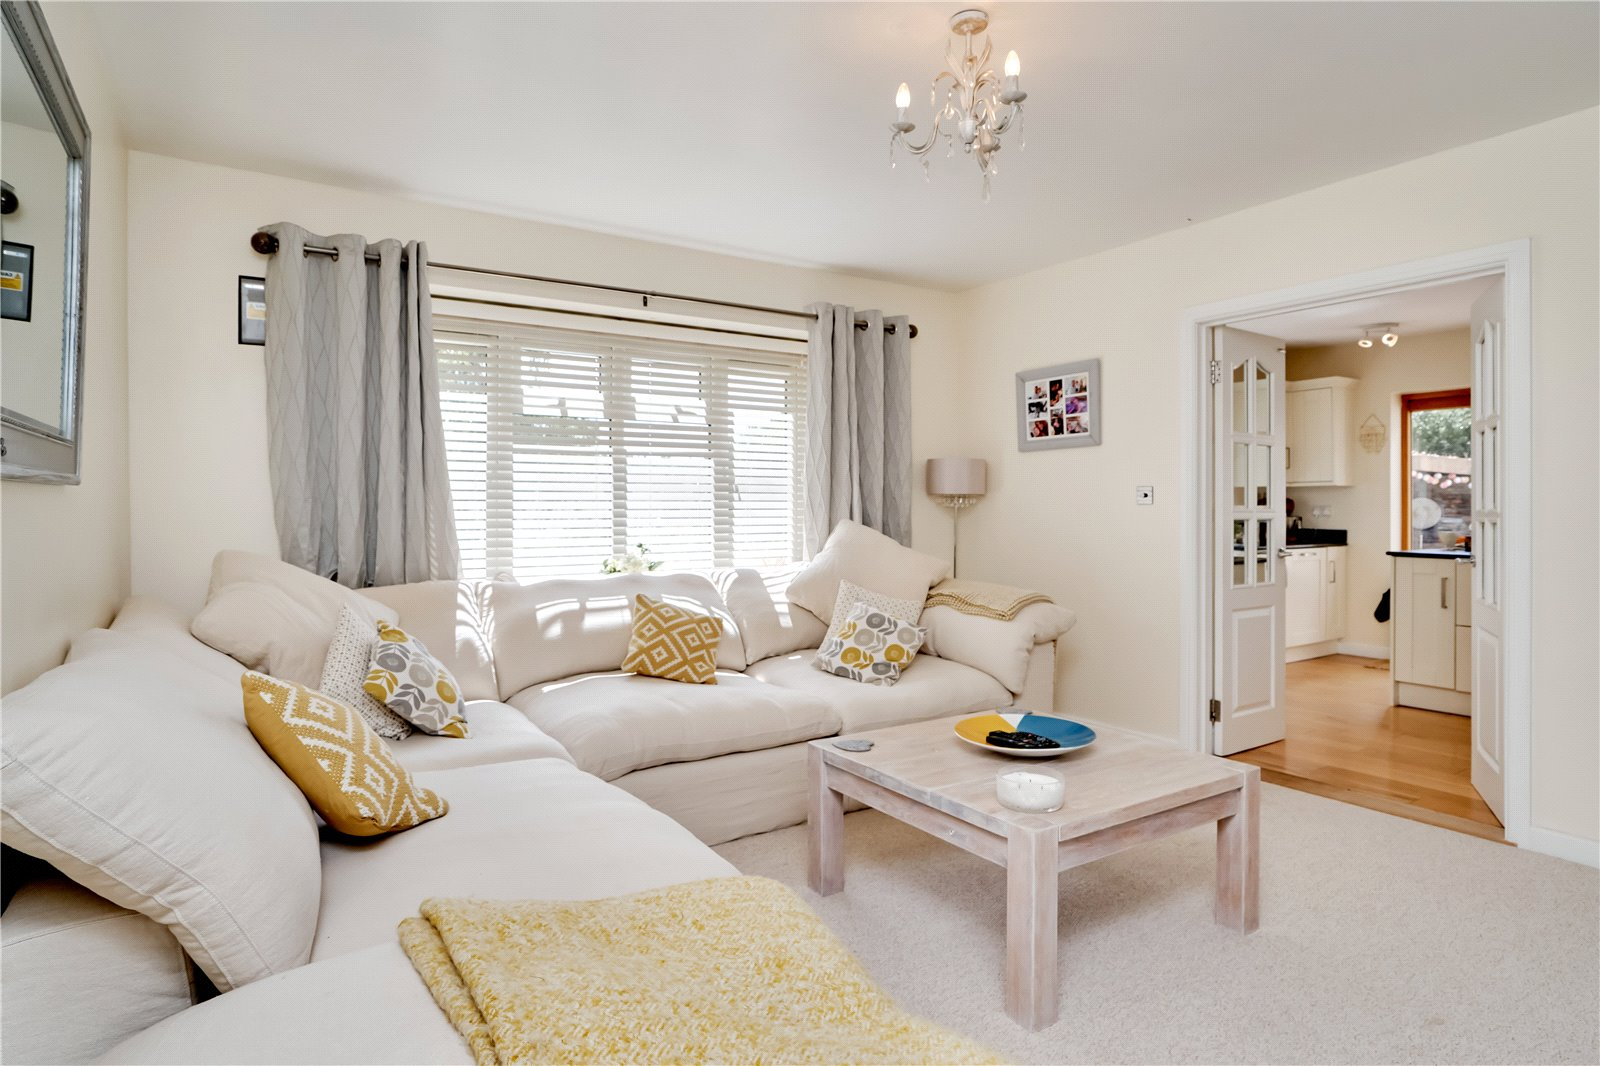 4 bed house for sale in Welwyn, AL6 0QG  - Property Image 9